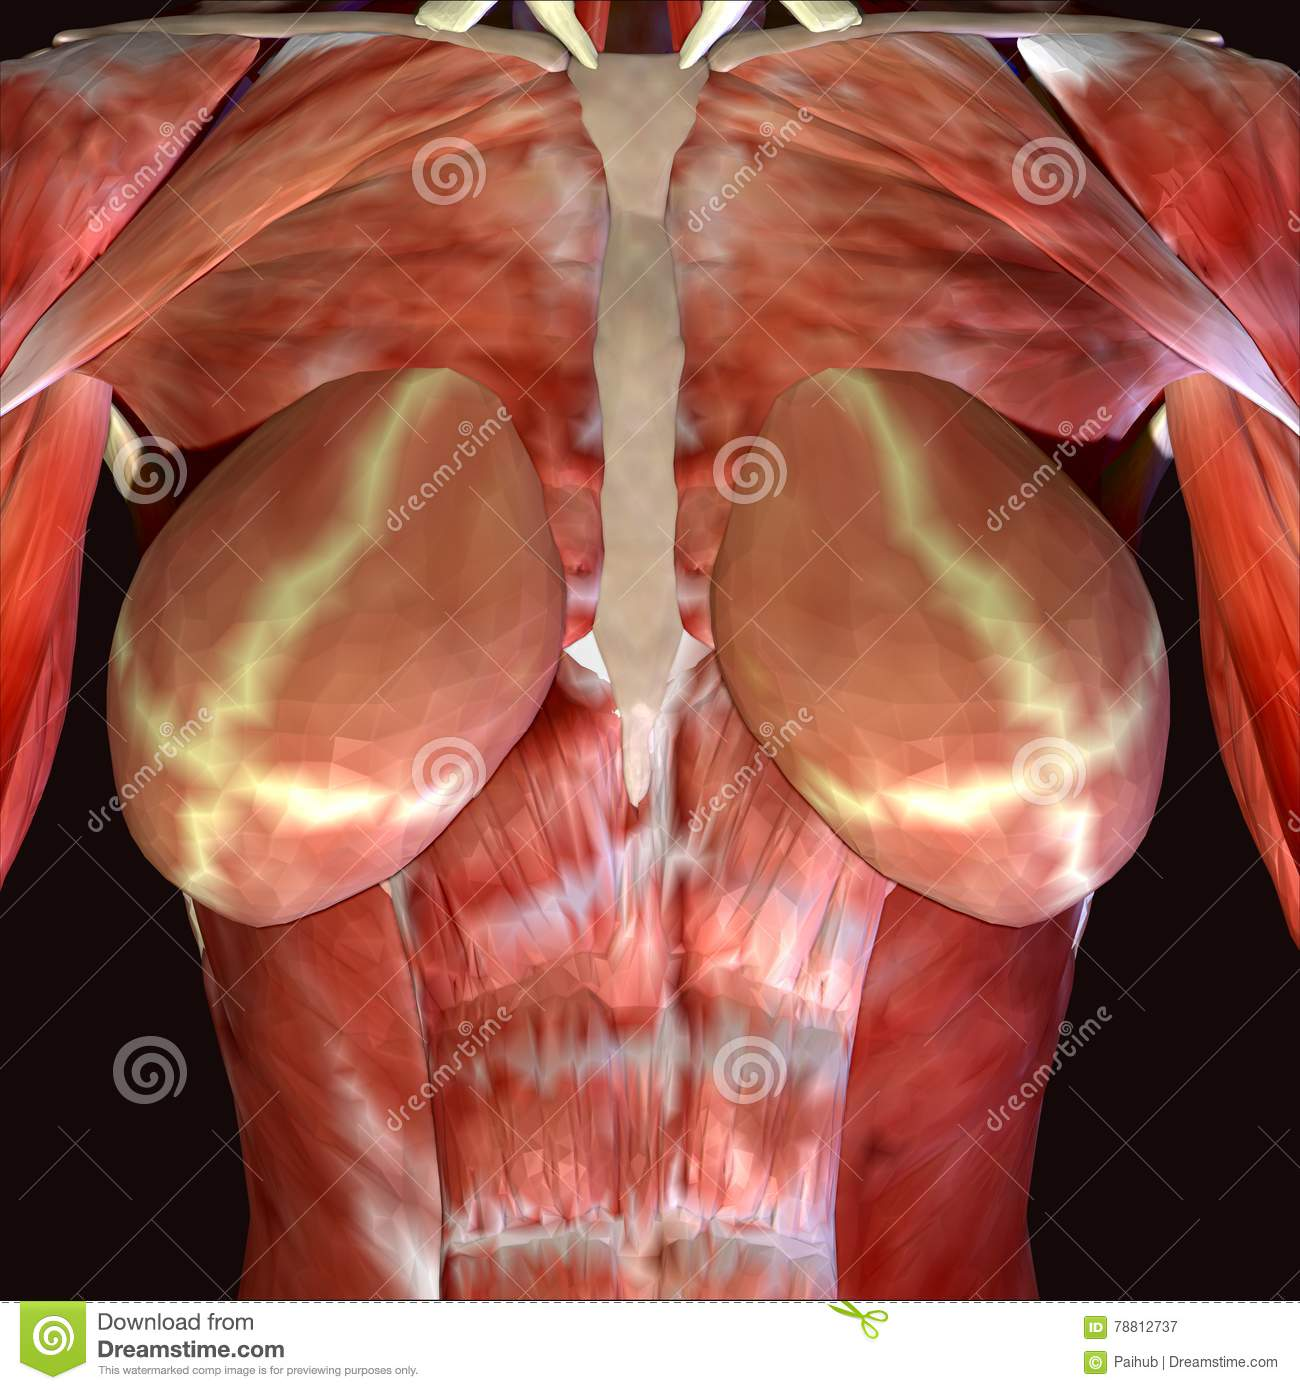 3d Render Depicting The Muscle Structure Of The Human Body Stock